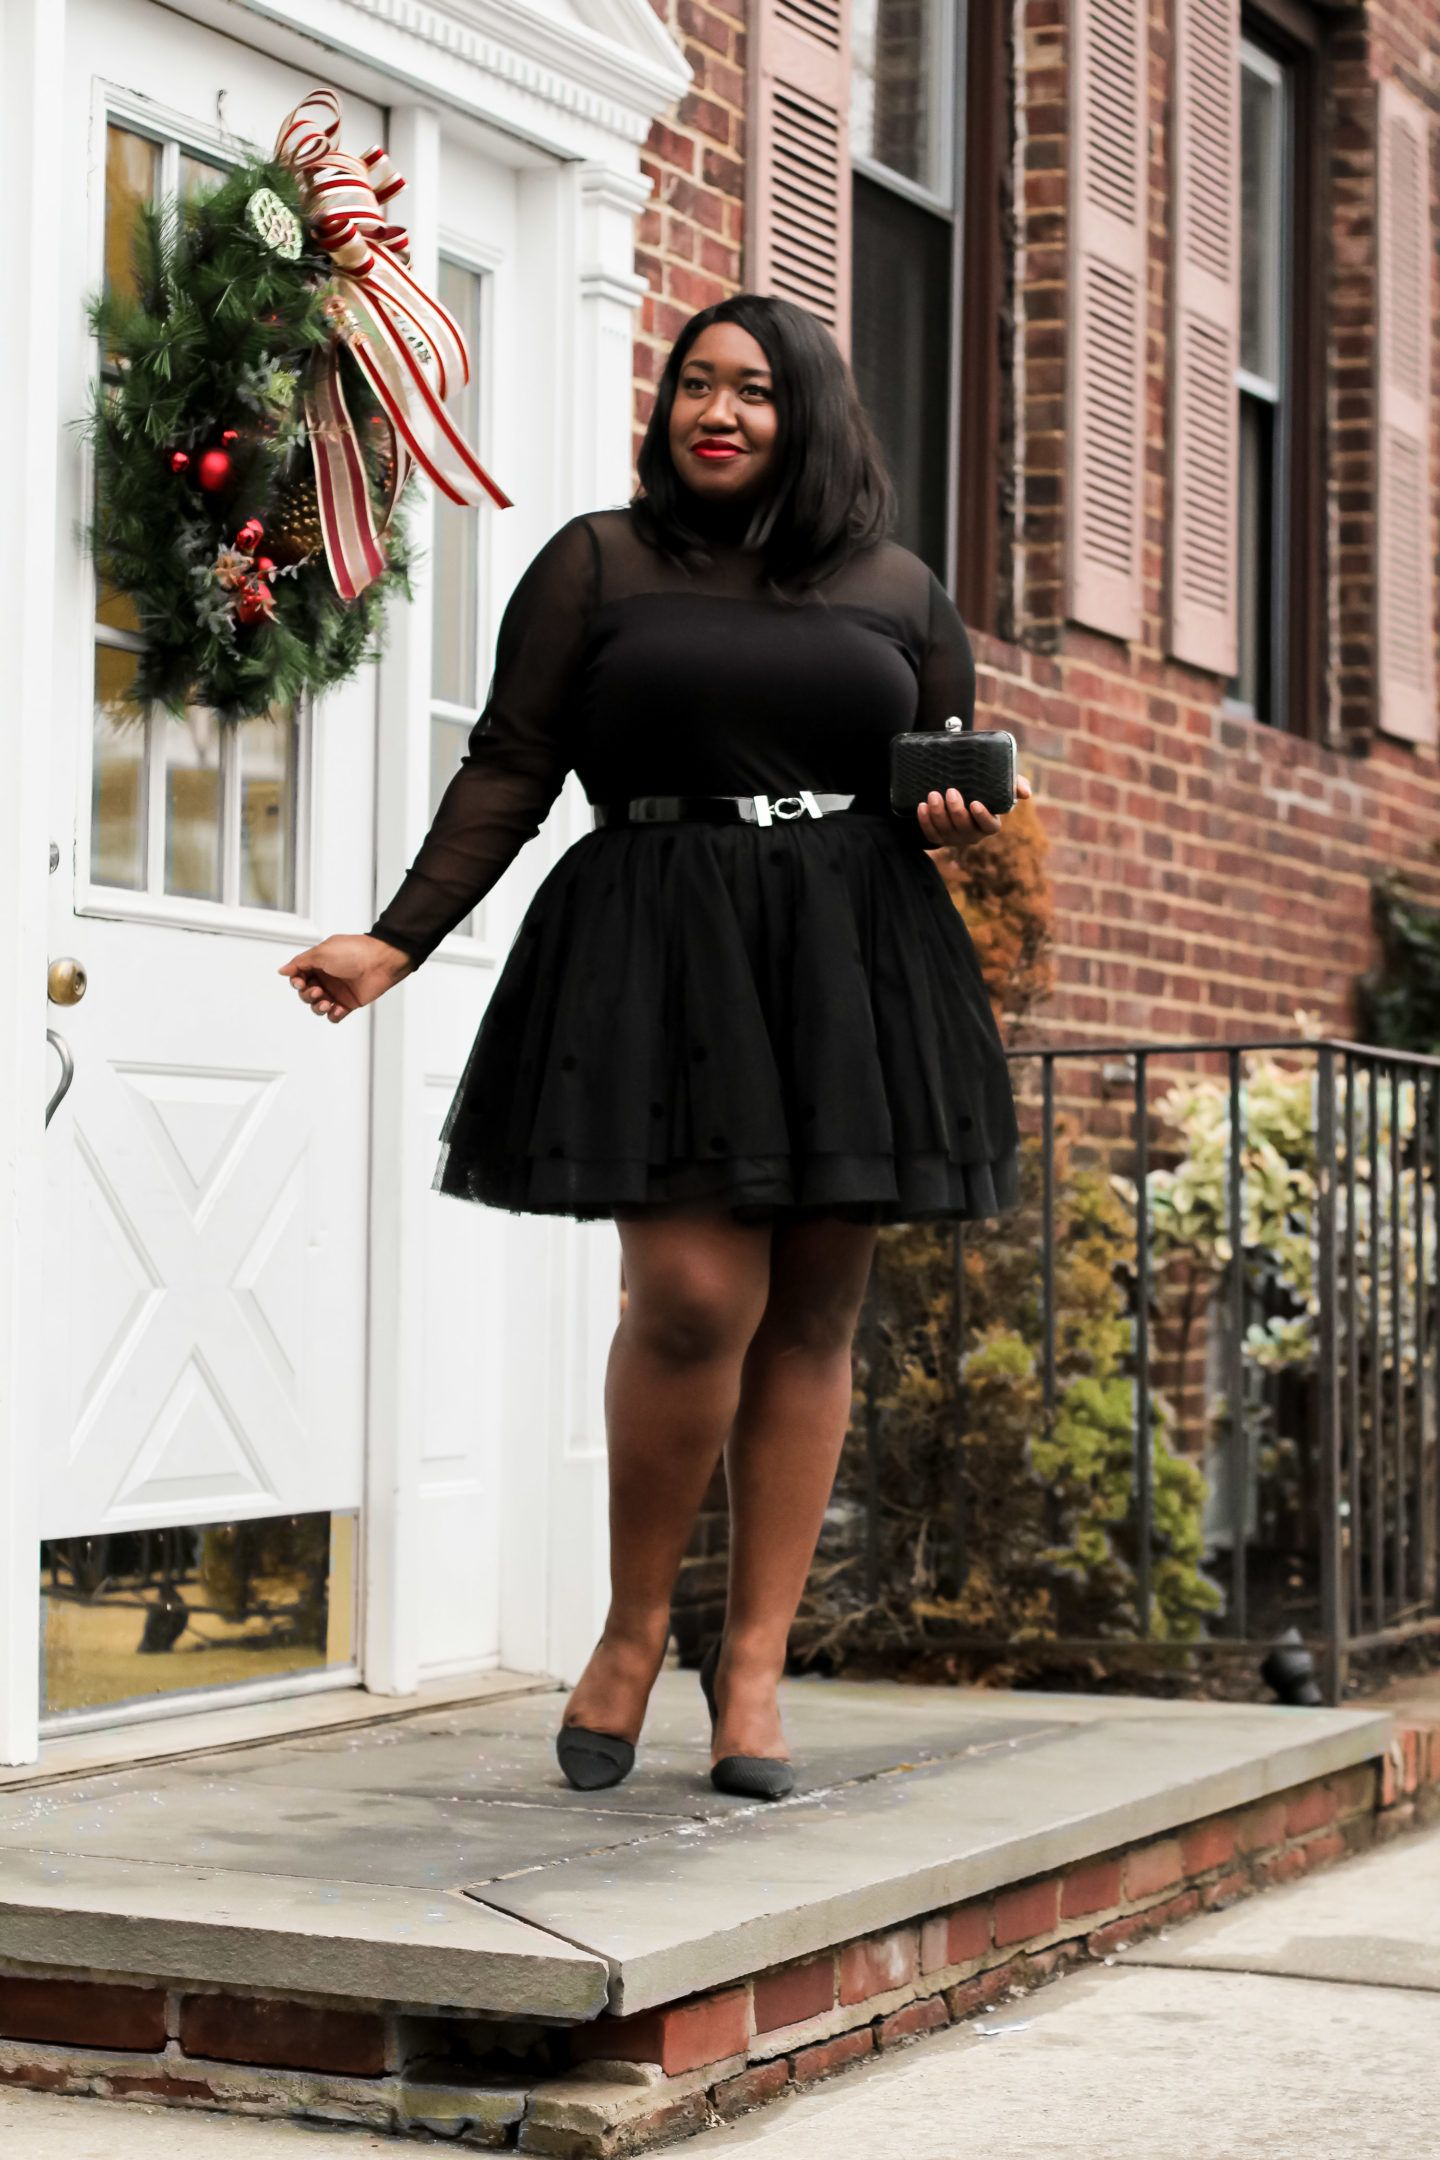 4d01600c2d Plus Size Fashion • Plus Size Tulle Skirt Holiday Outfit • Tulles of the  Trade • Shapely Chic Sheri